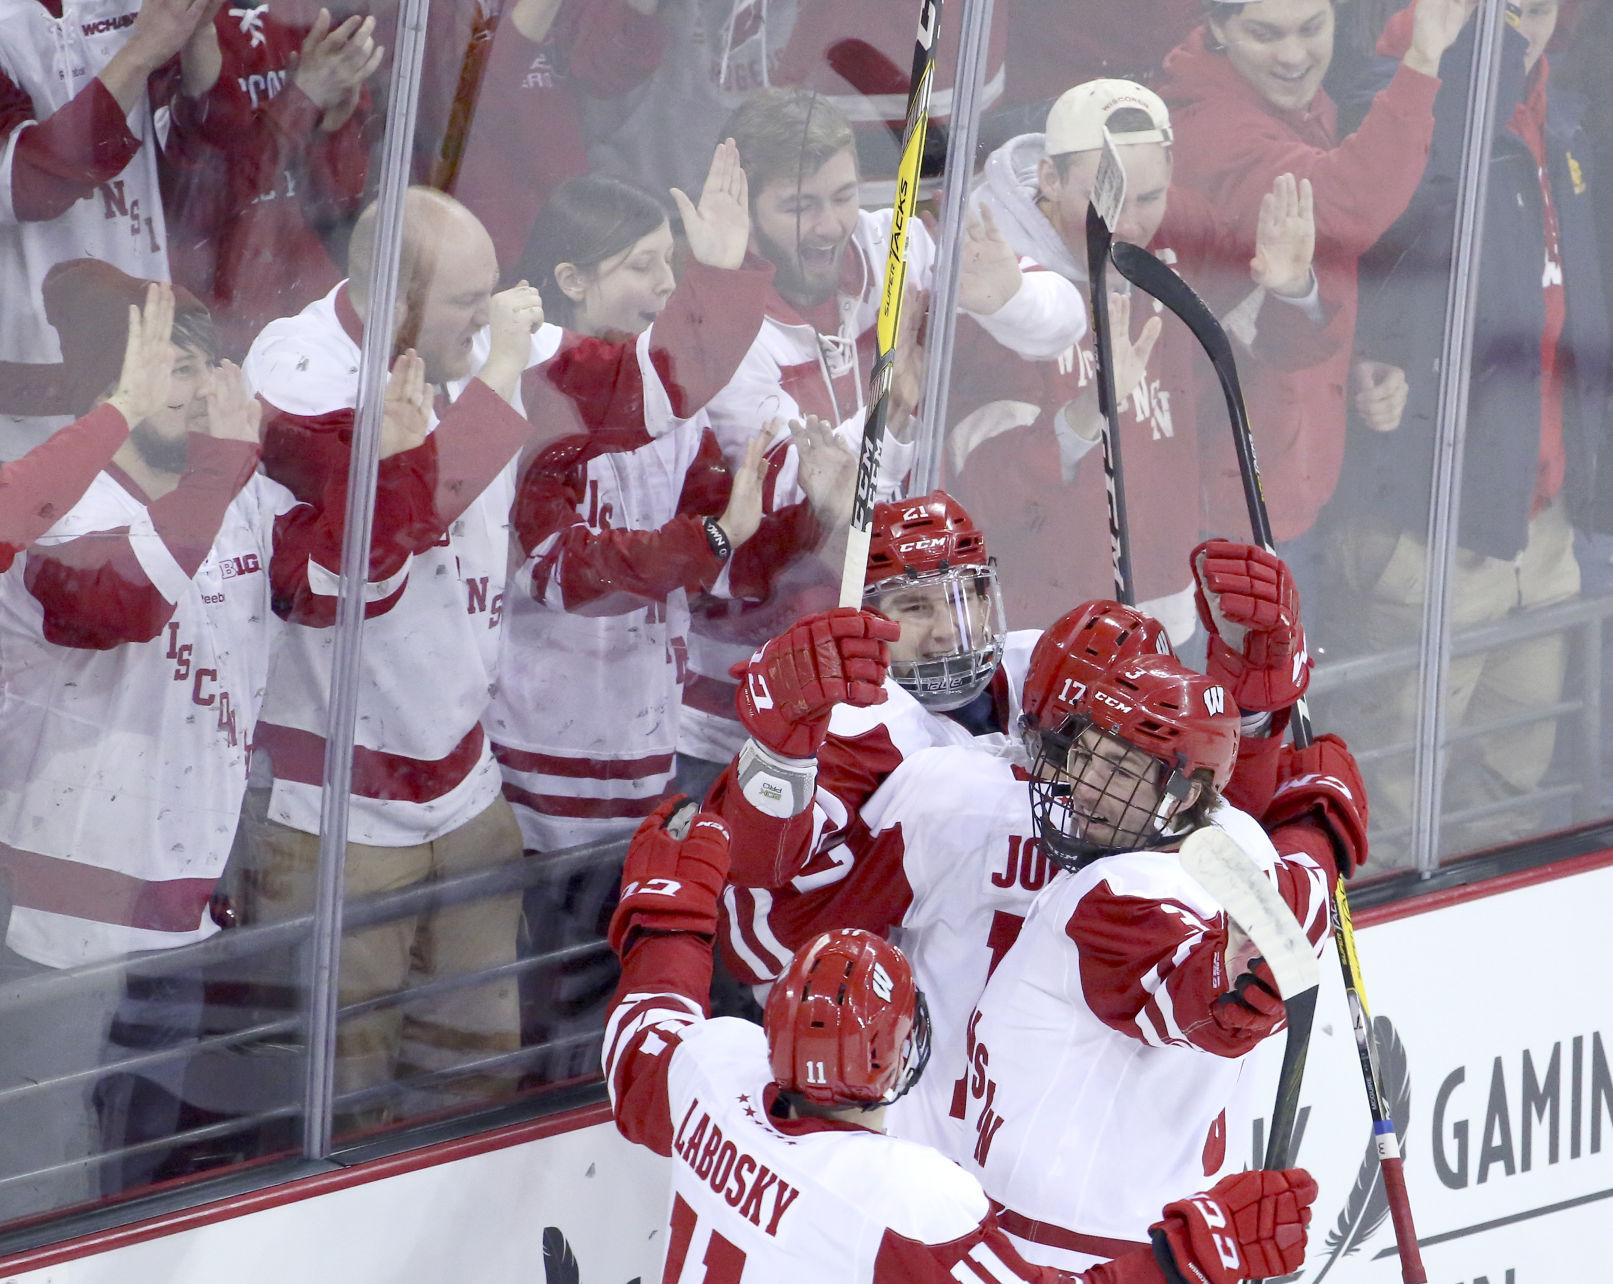 BIG10: Badgers - After Years Of Decline, Season-ticket Sales Climb For Second Straight Year